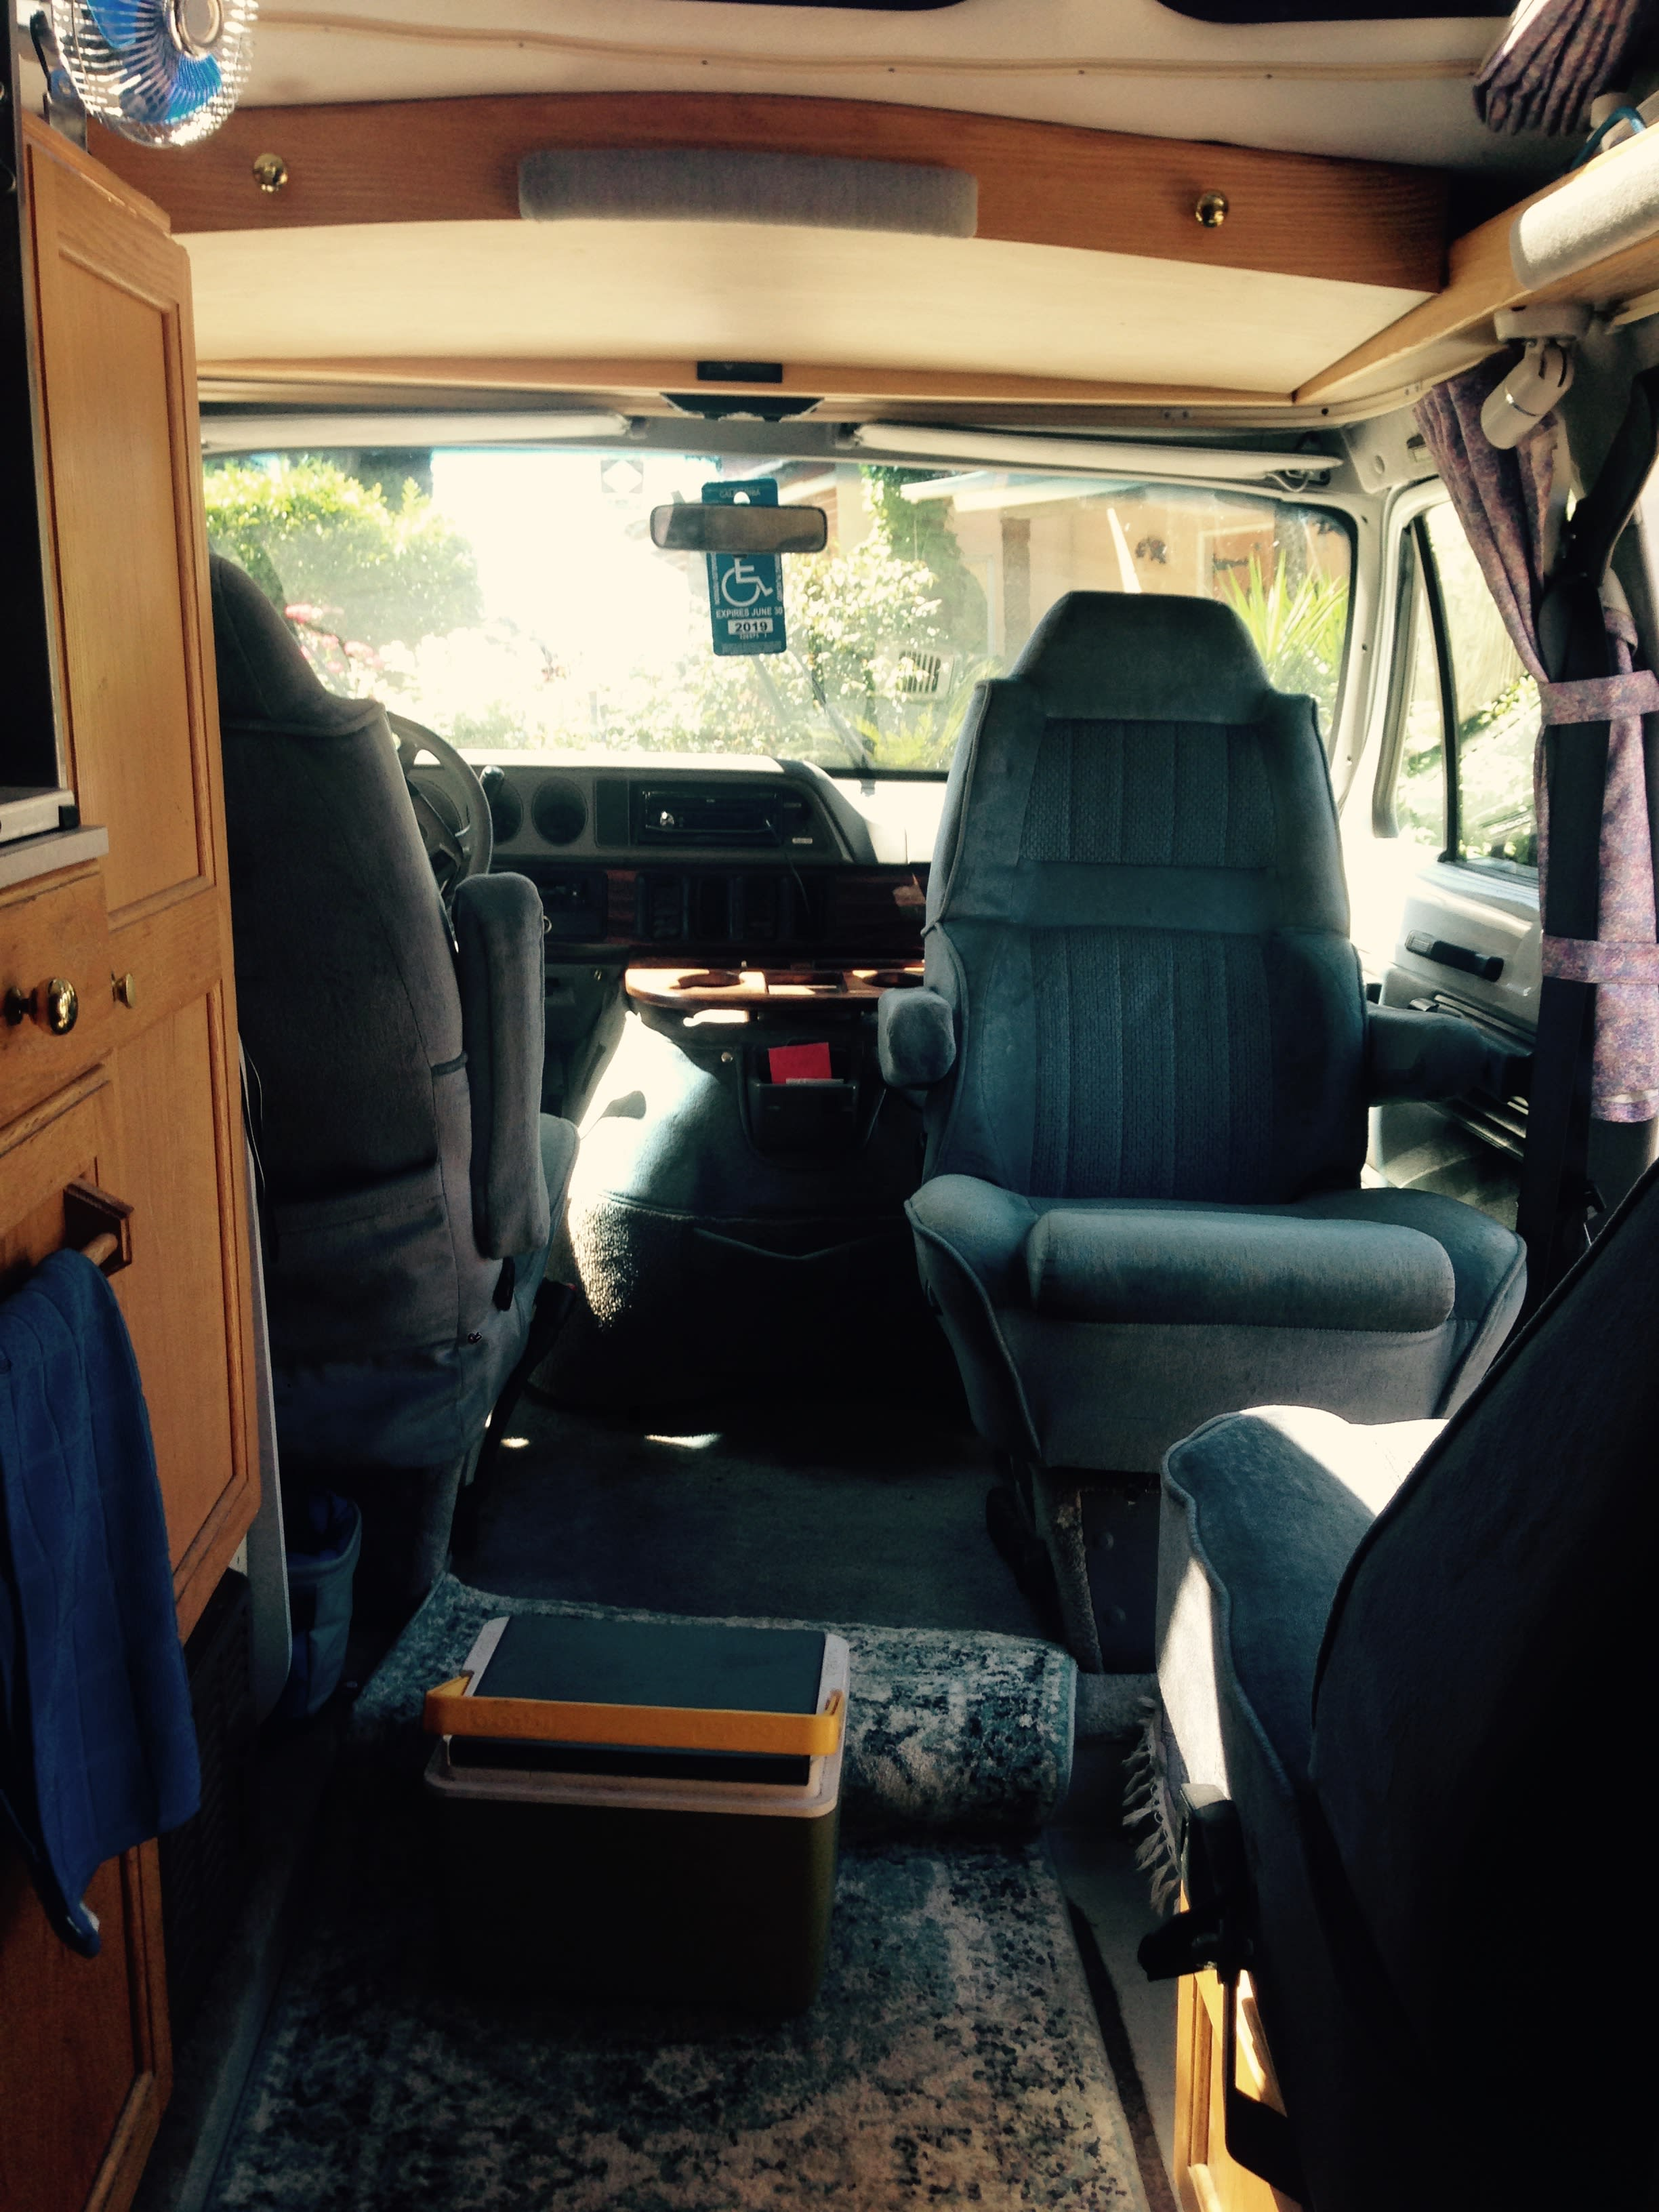 Captain's chair swiveled to rear. Roadtrek 190 Popular 1998